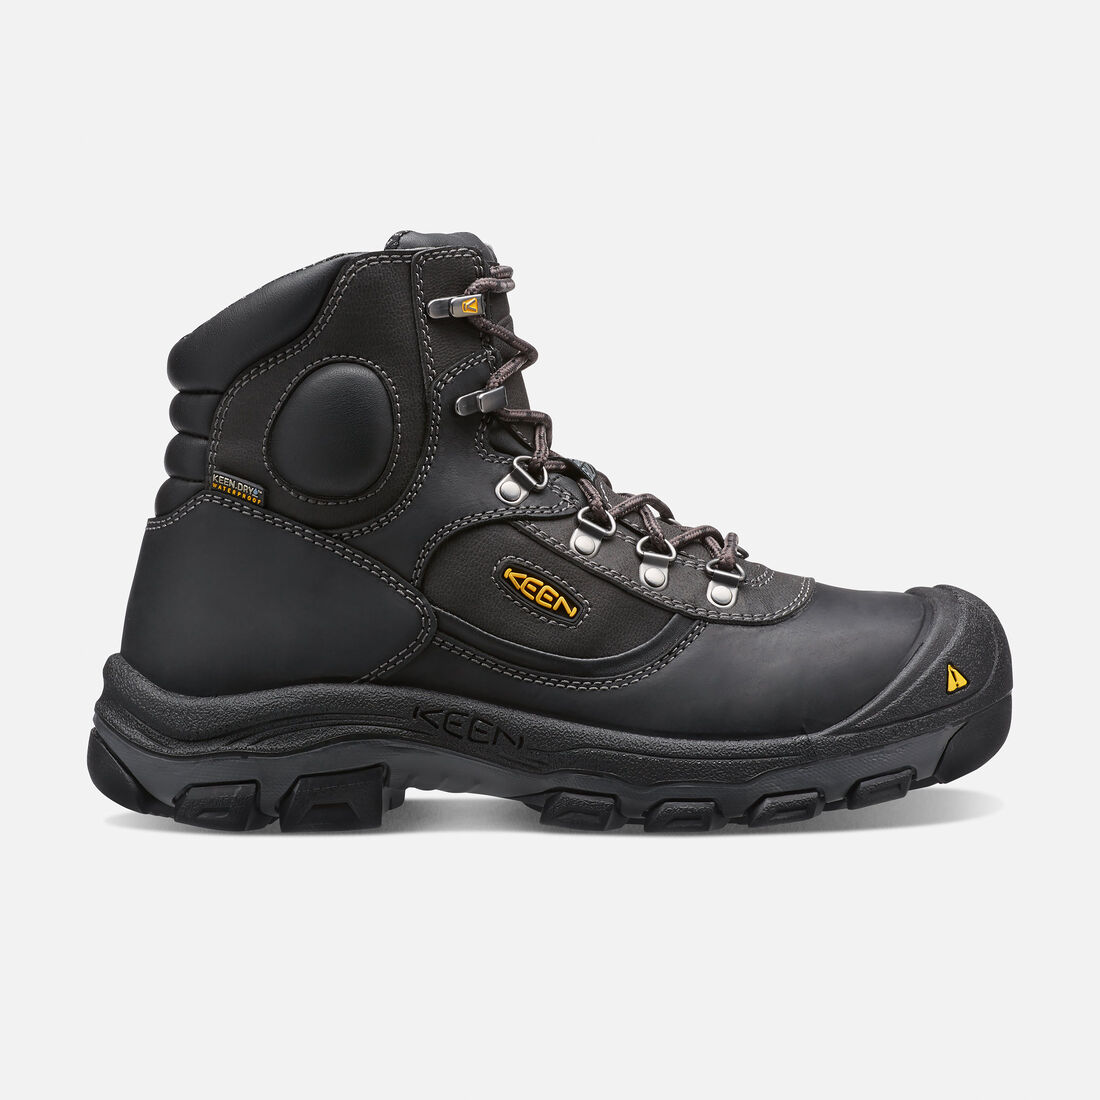 "Men's Leavenworth Internal Met 6"" Boot (Steel Toe) in Black - large view."